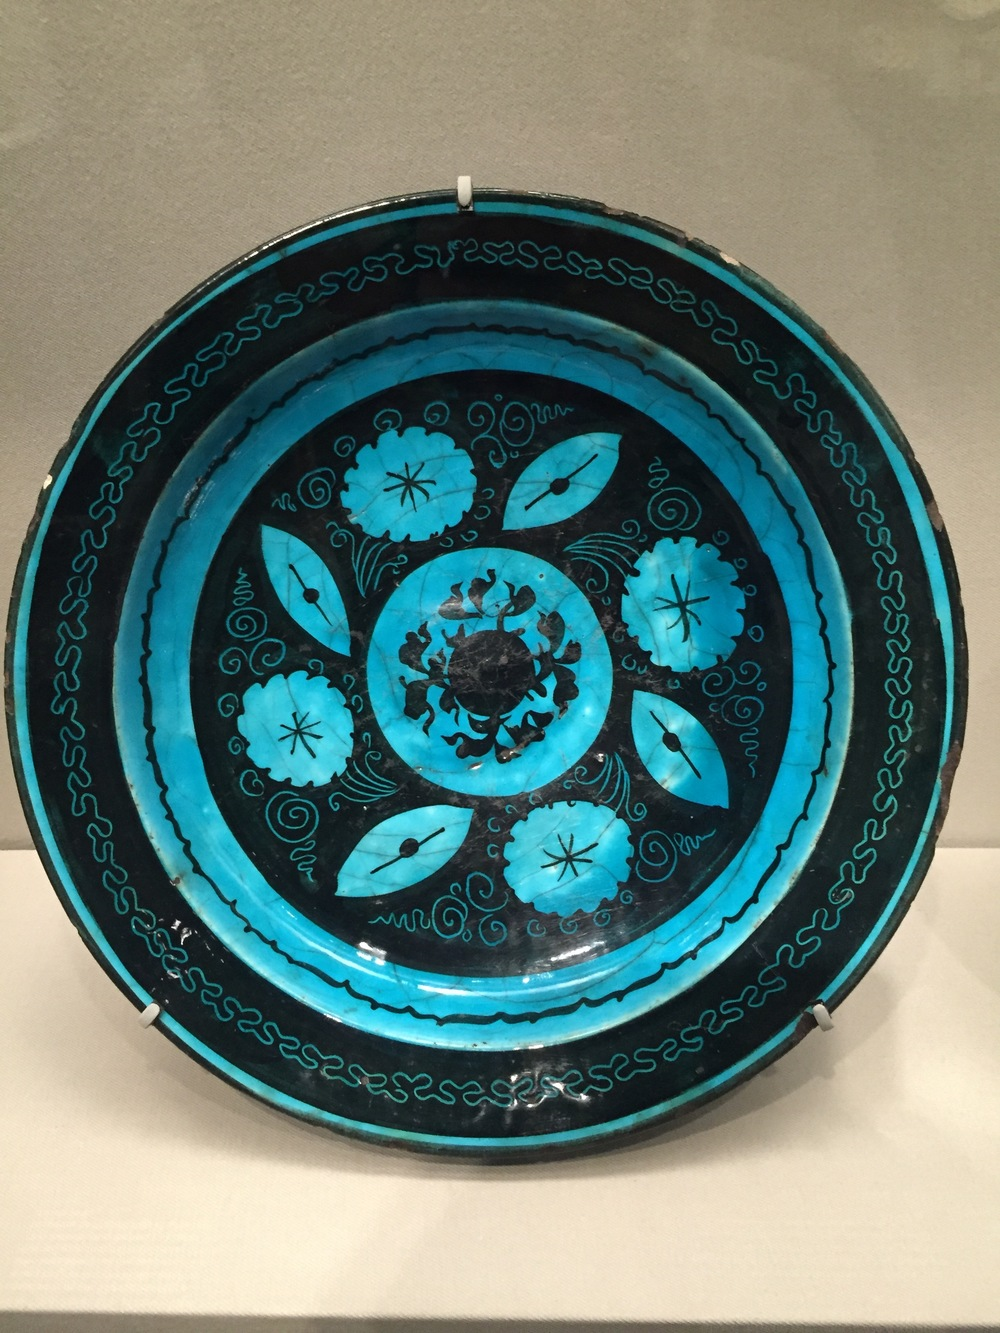 Dish with flower and leaf designs